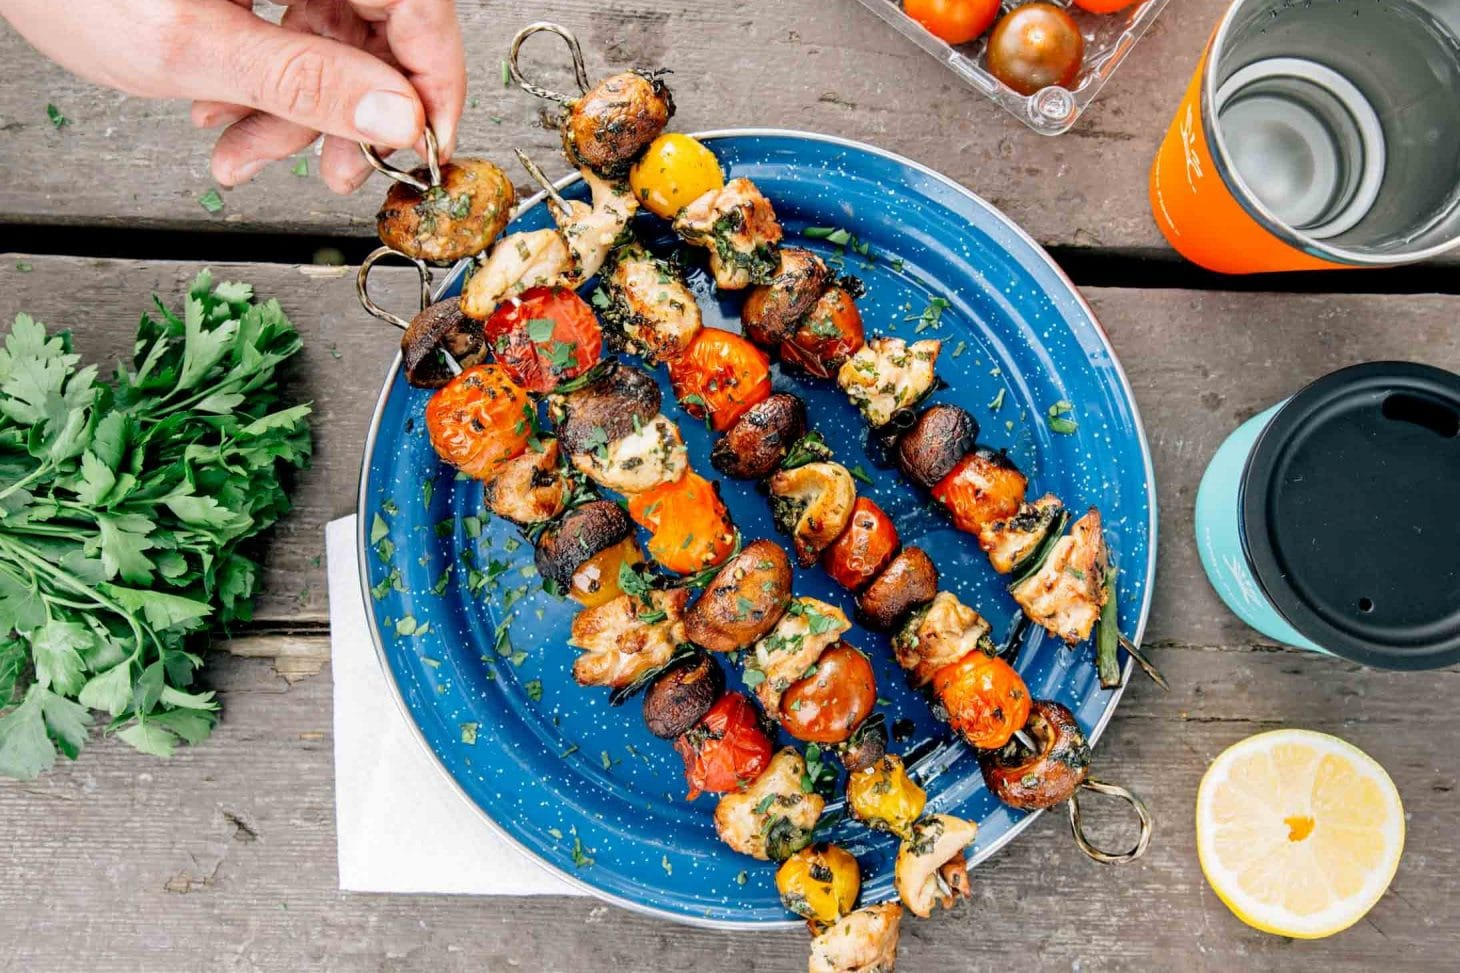 These Grilled Veggie Chicken Skewers Are A Great Make Ahead Camping Meal